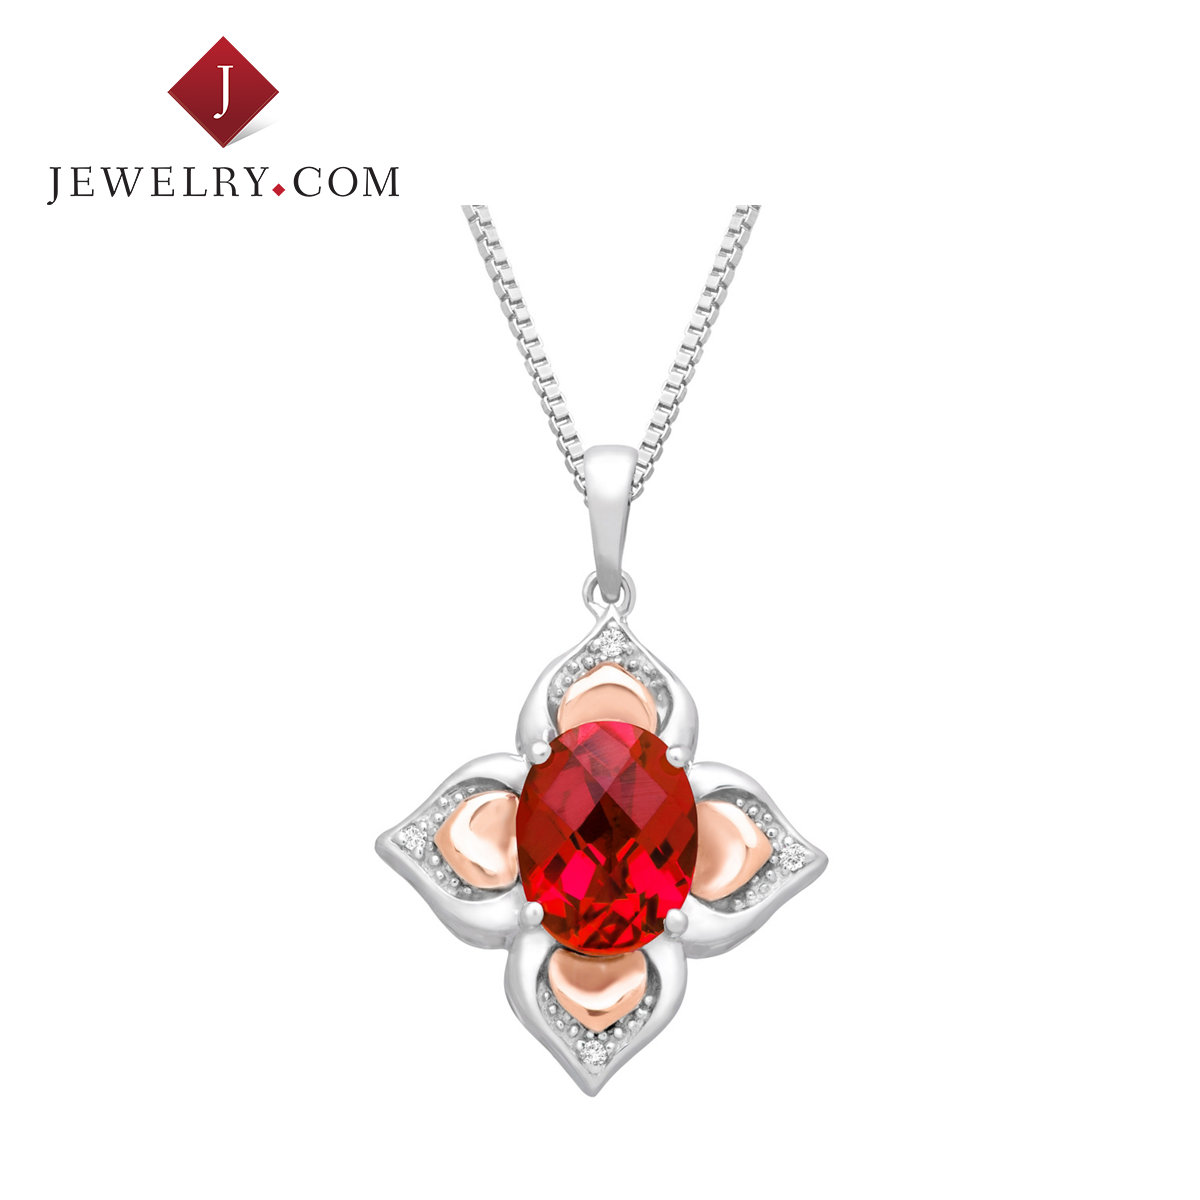 Jewelry.com official silver 925 k rose gold ruby diamond elegant fashion female models pendant charm